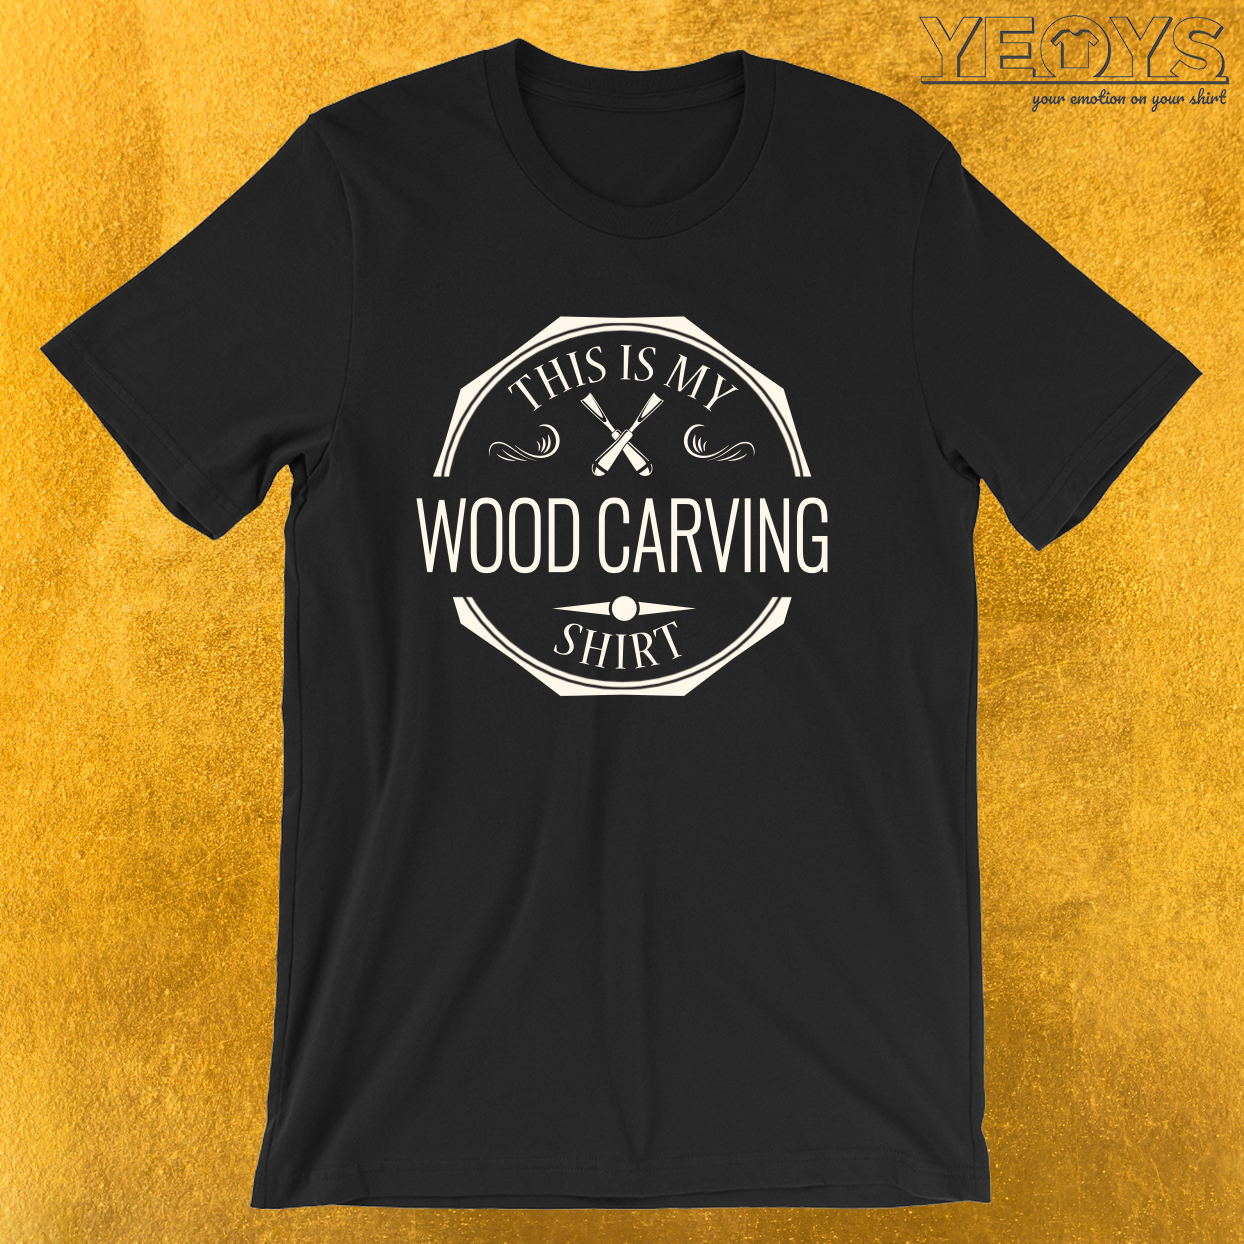 This Is My Wood Carving Shirt – Whittle Wood Tee